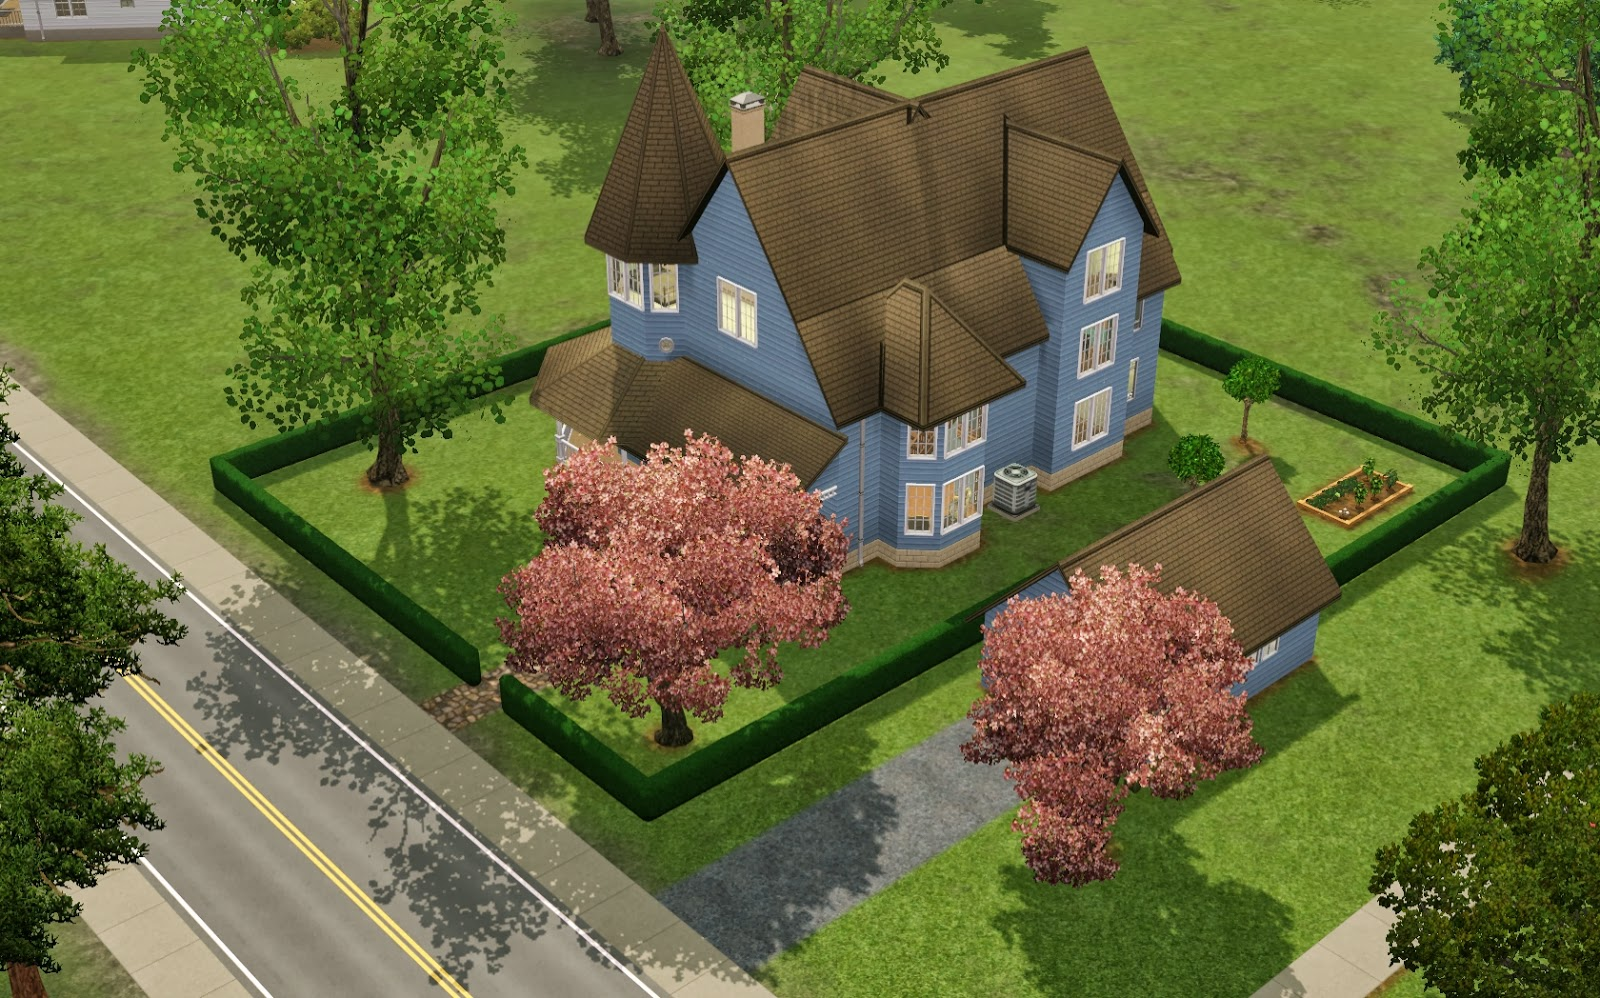 Summer's Little Sims 3 Garden: Moonlight Falls List of Houses